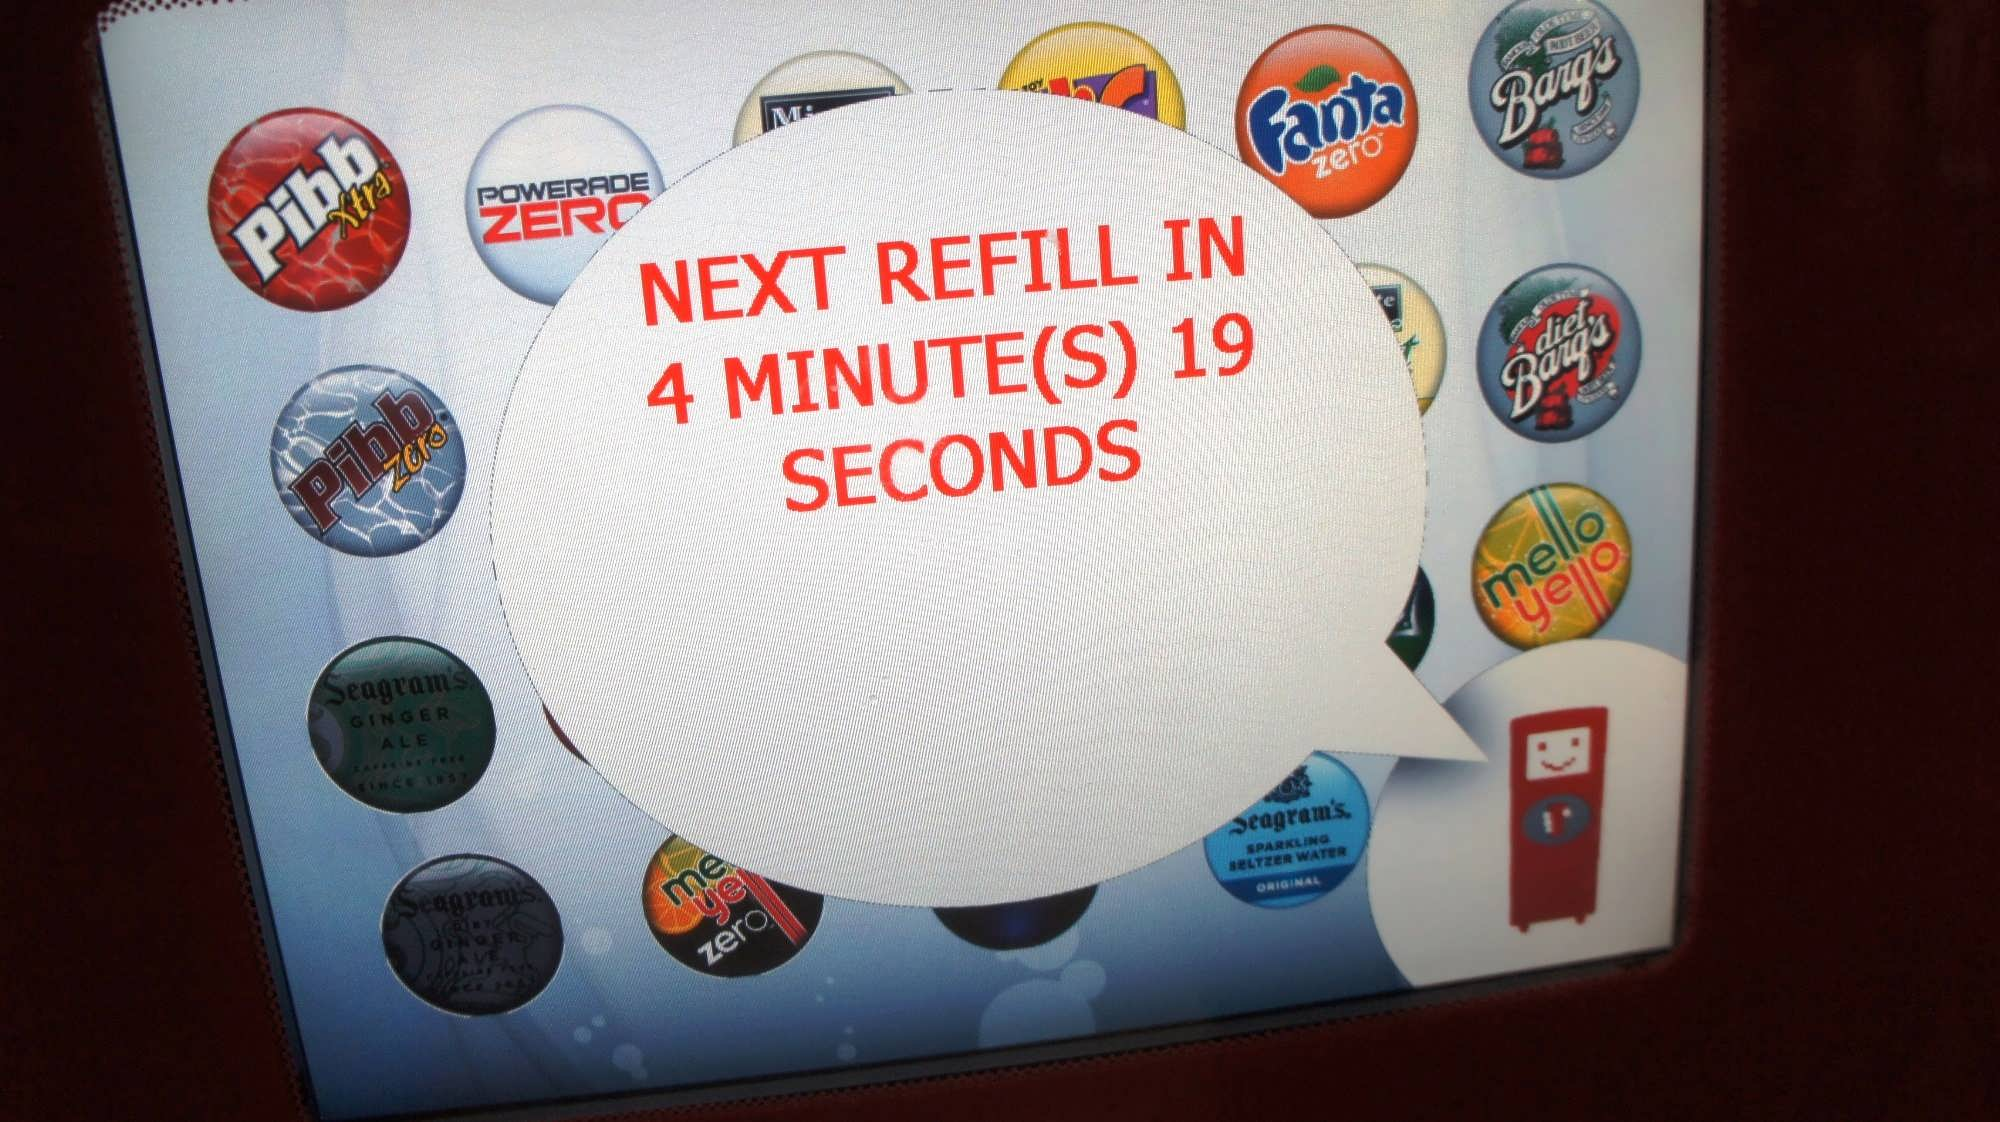 Coke Freestyle program at Universal Orlando